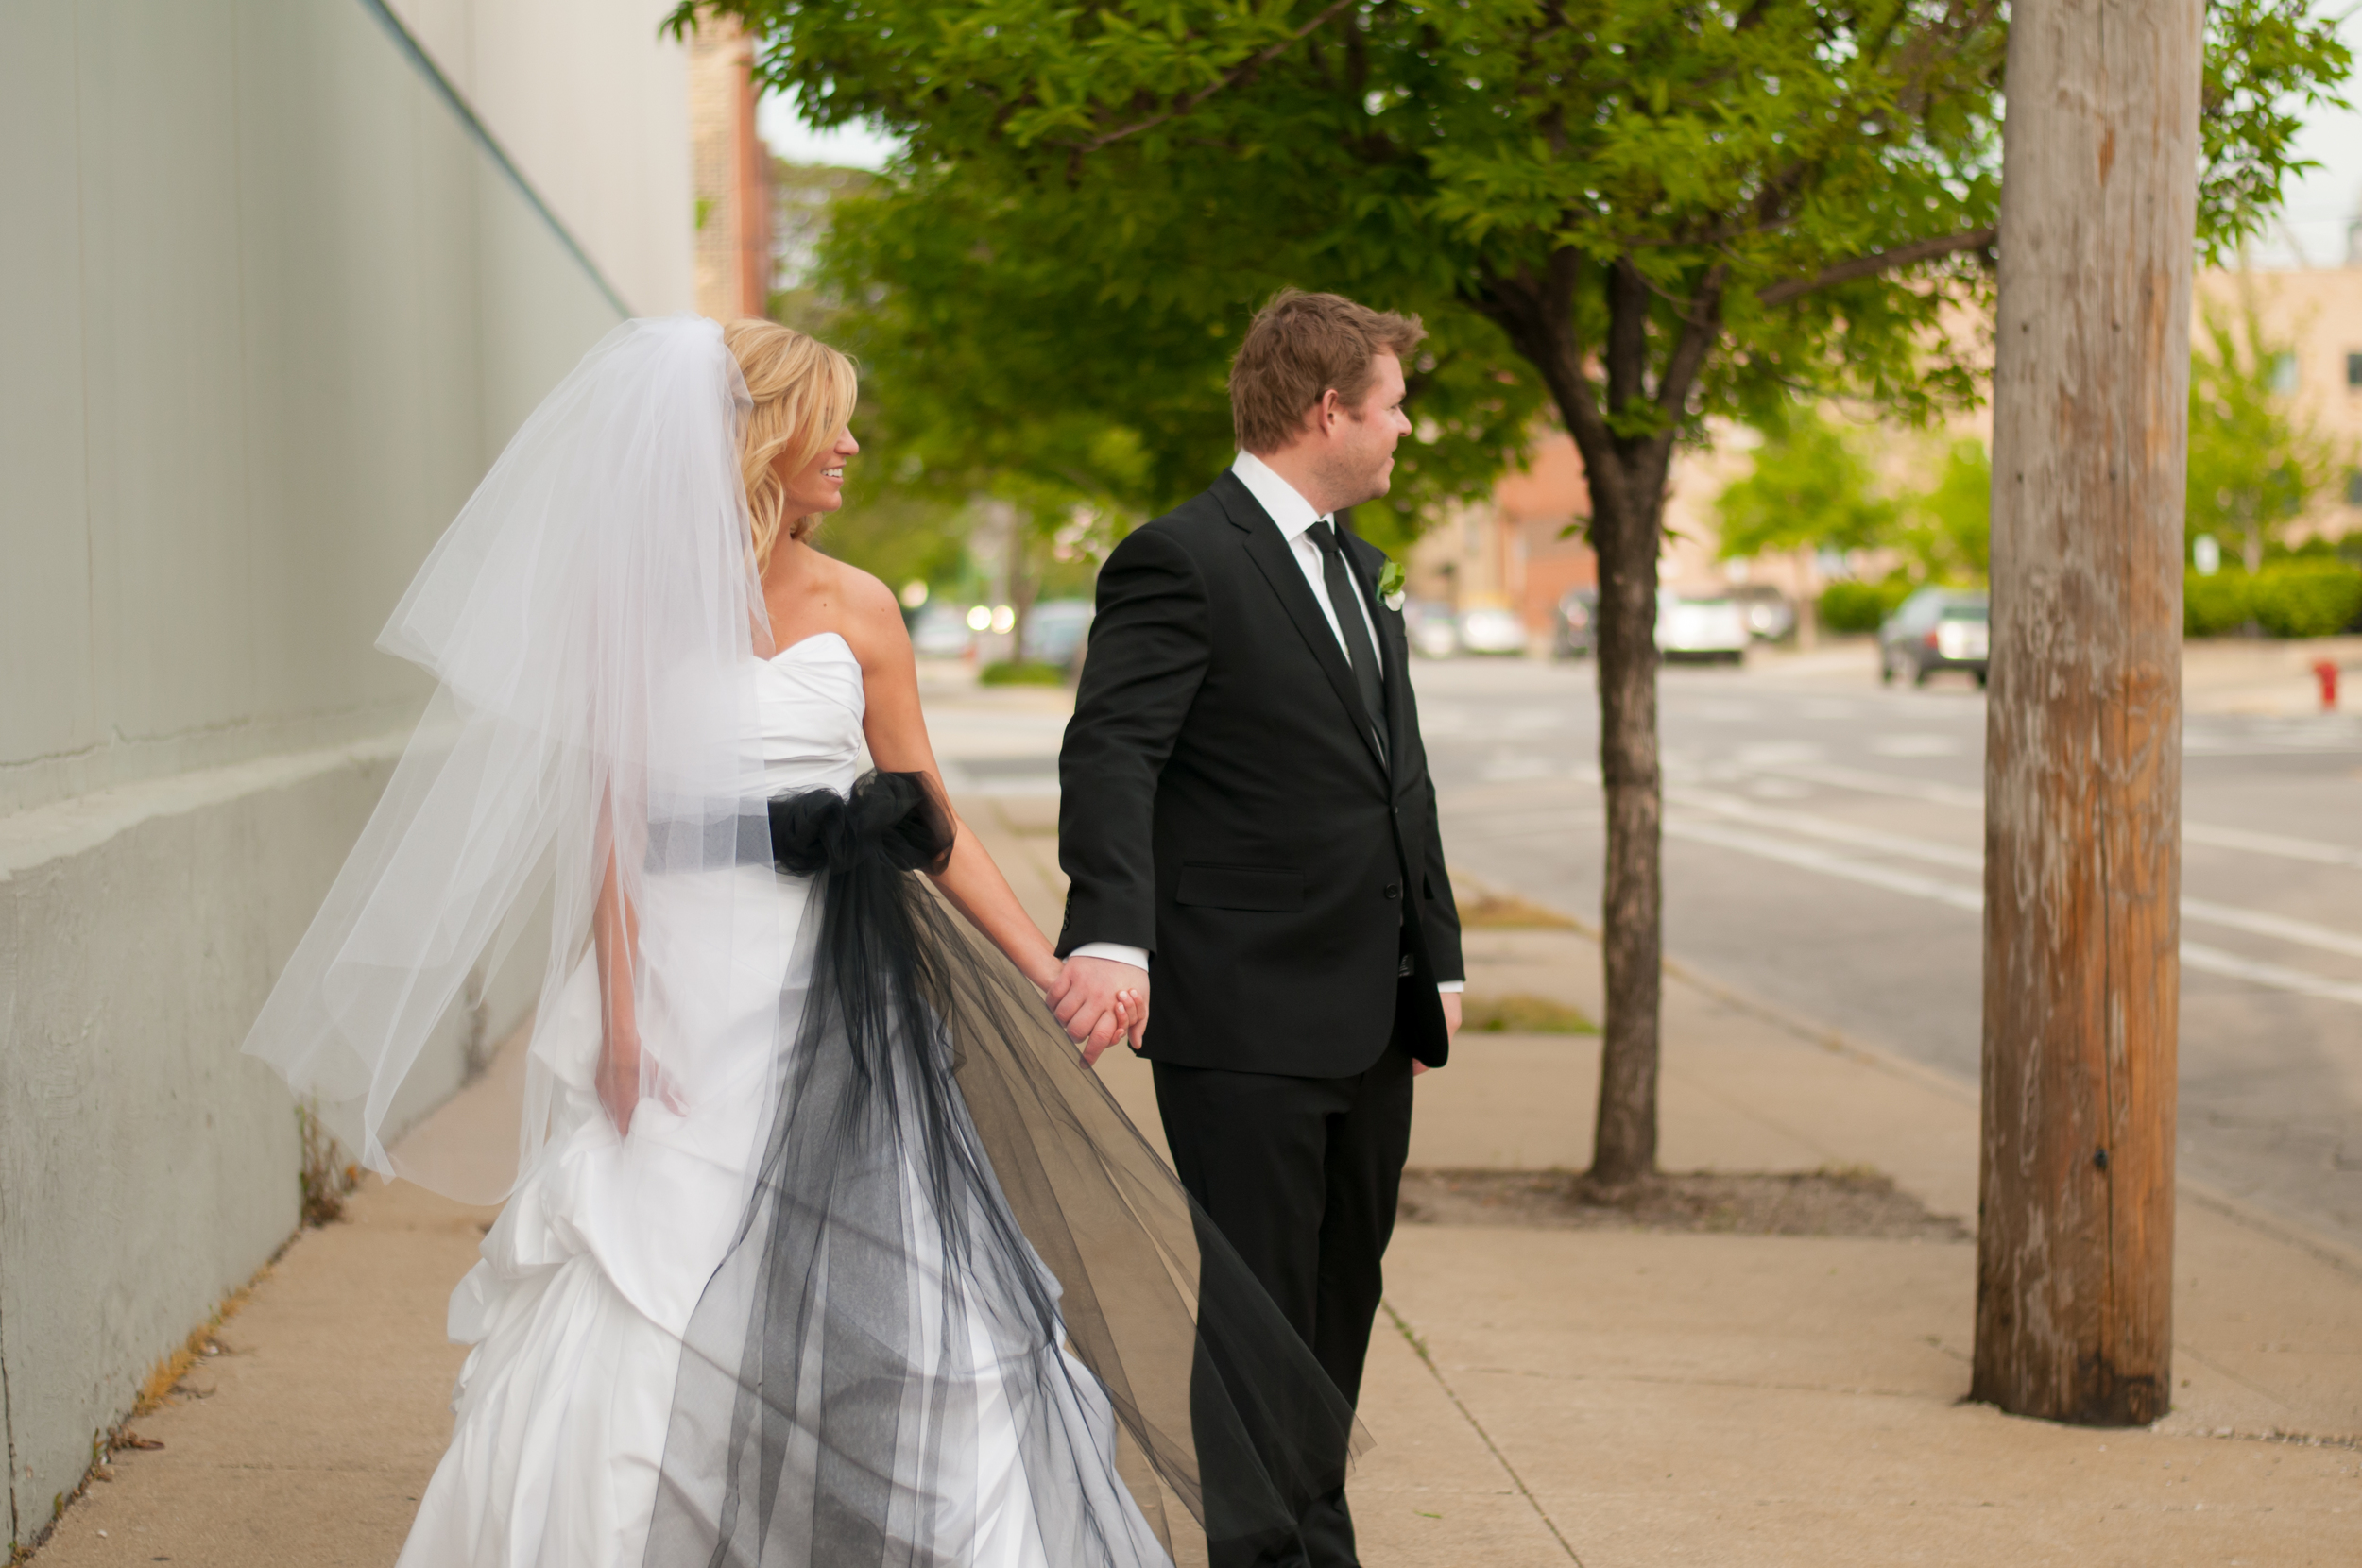 meredith donnelly photography-84.jpg